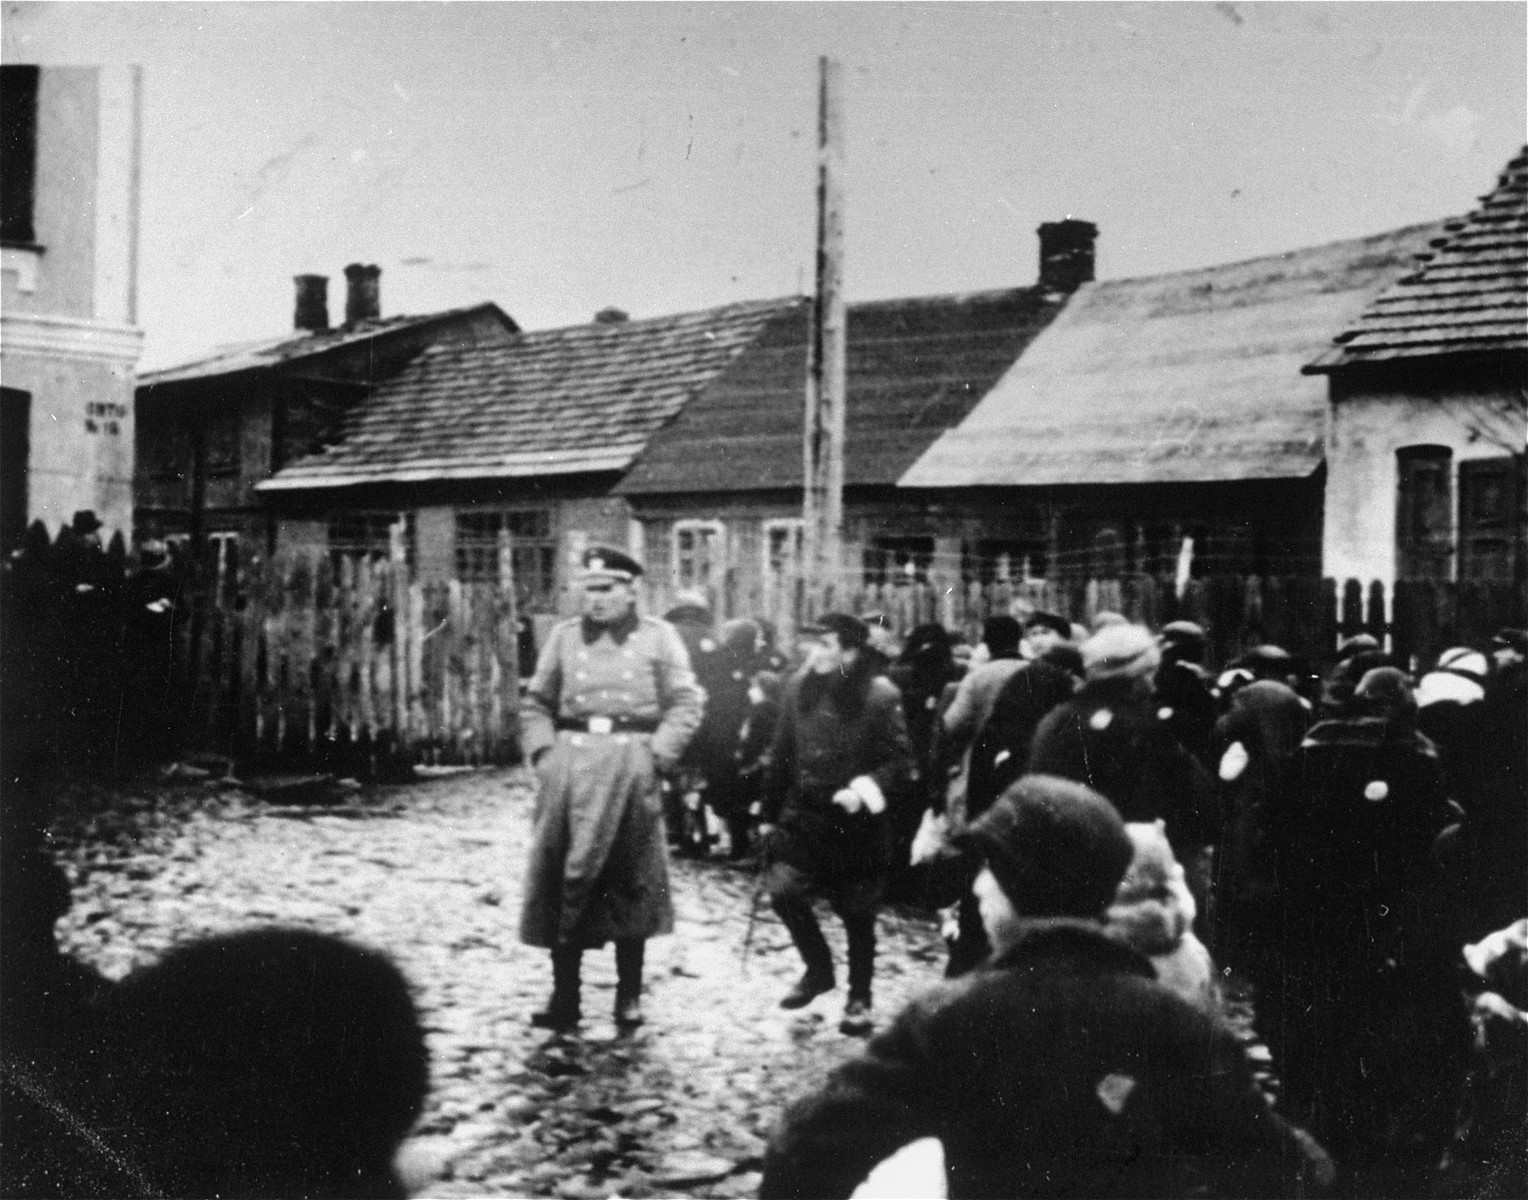 A German police officer stands in a fenced-in yard among a group of Jews, who have been rounded-up in the Ciechanow ghetto.